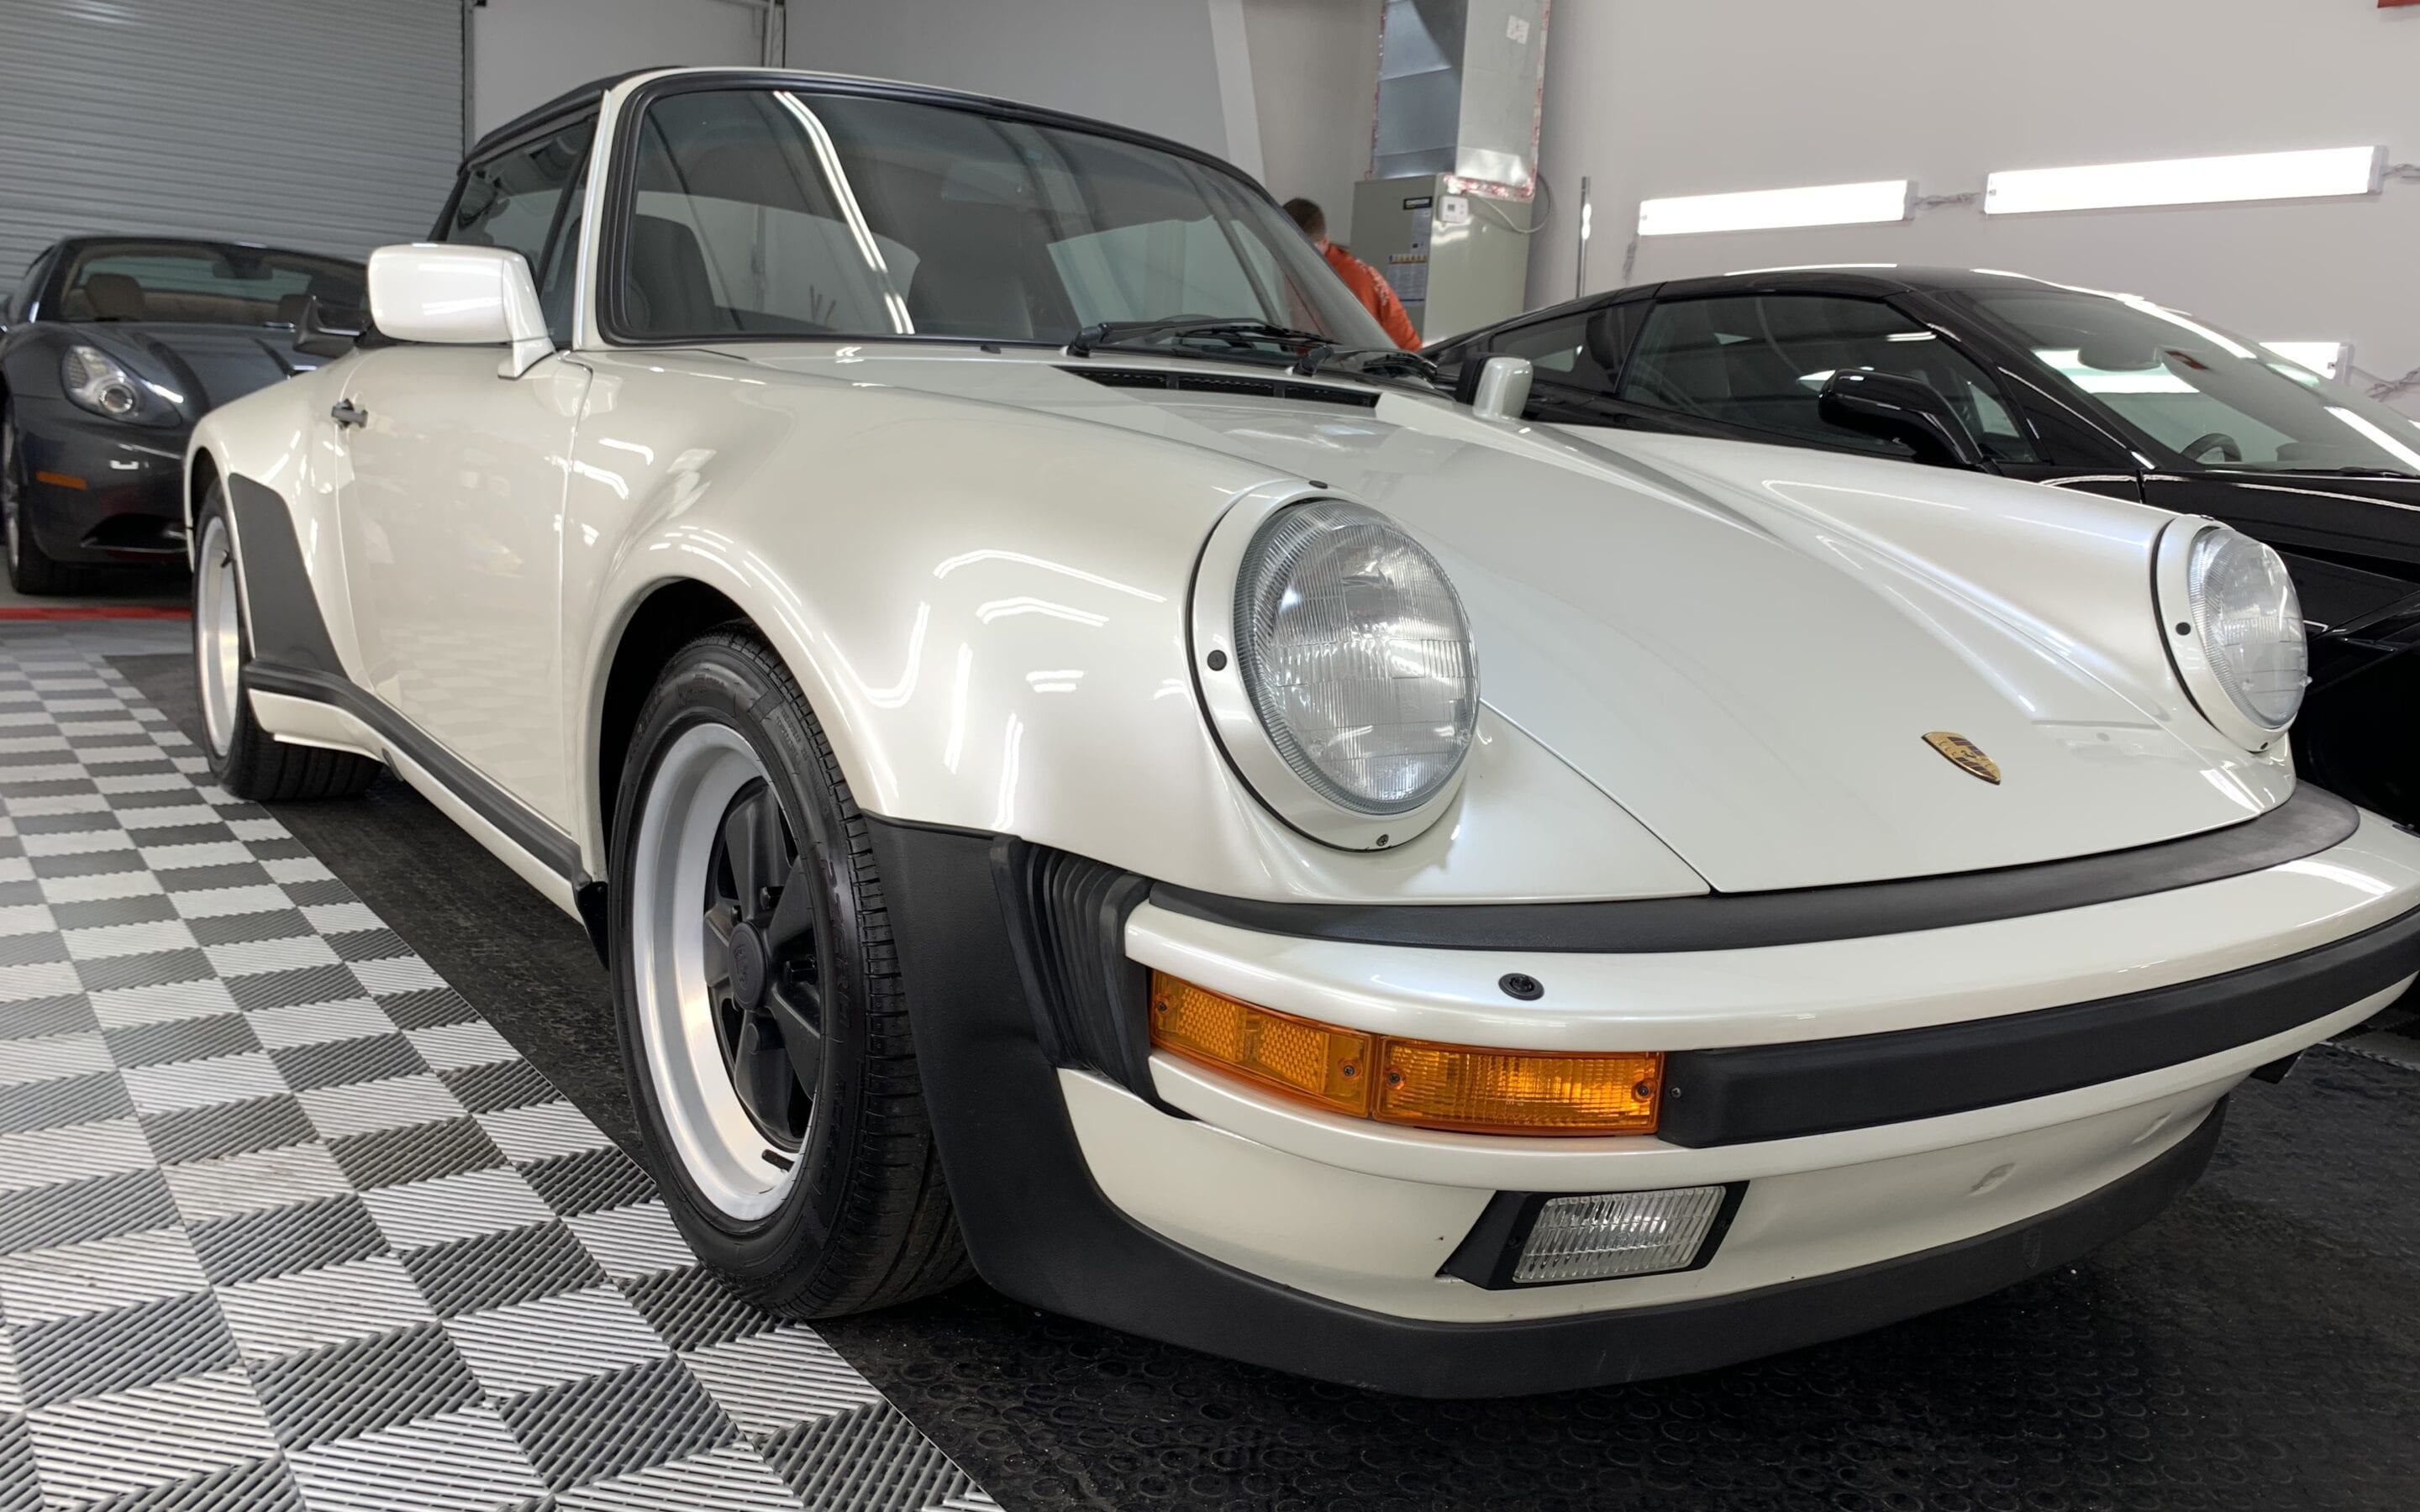 Ceramic Coating of a 1988 Porsche 911